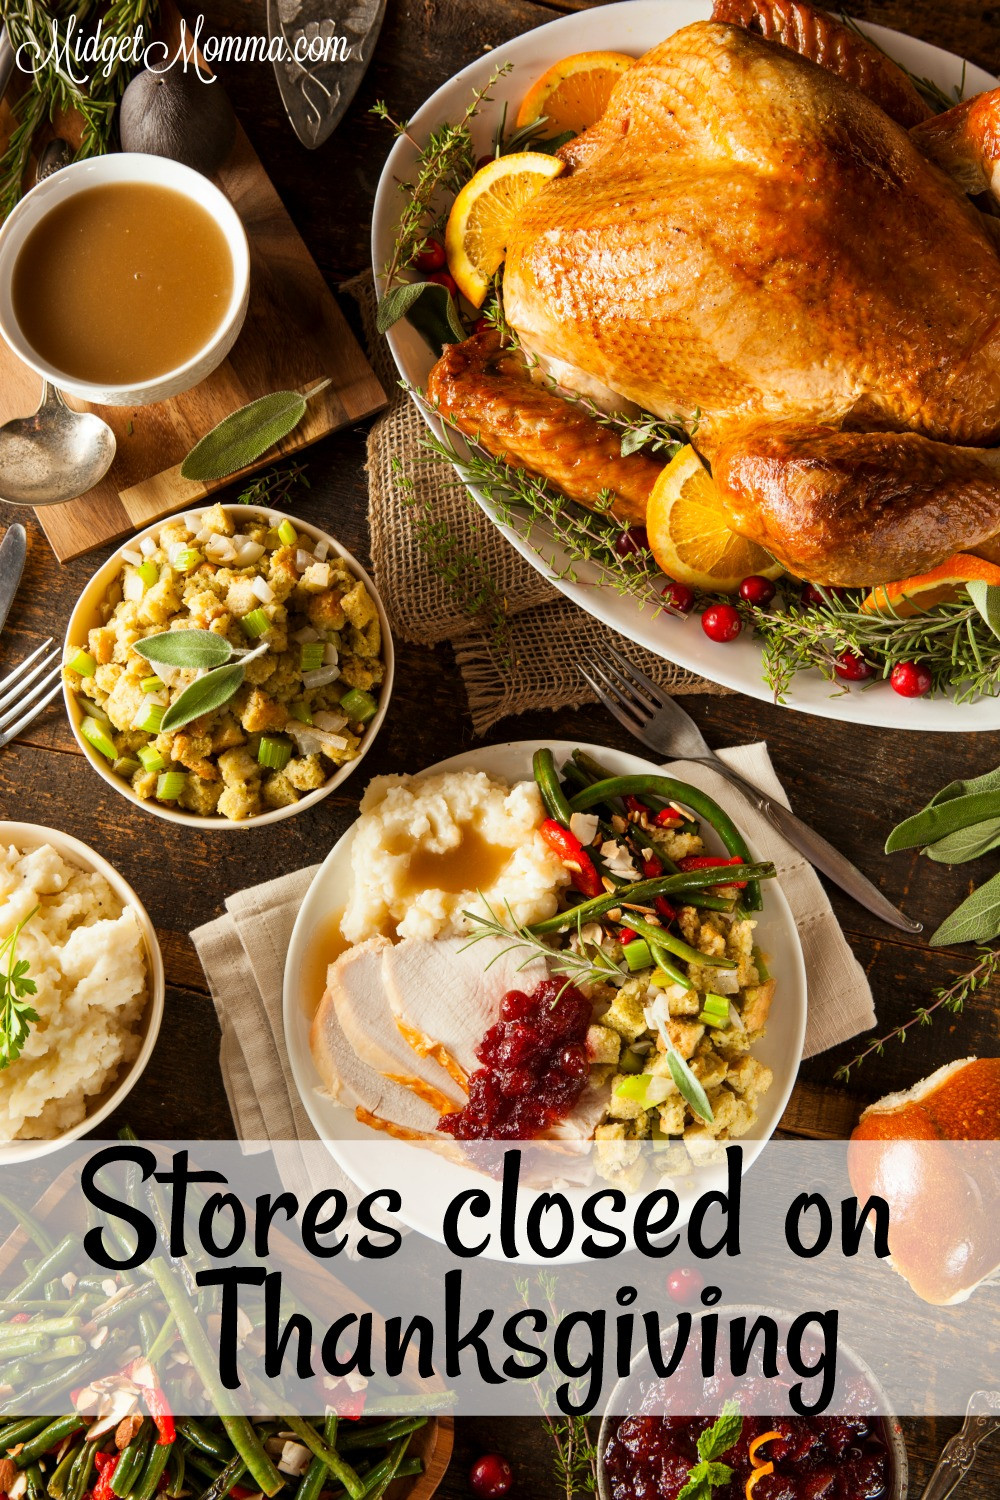 Order Thanksgiving Dinner Safeway  Stores closed on Thanksgiving 2017 • Mid Momma